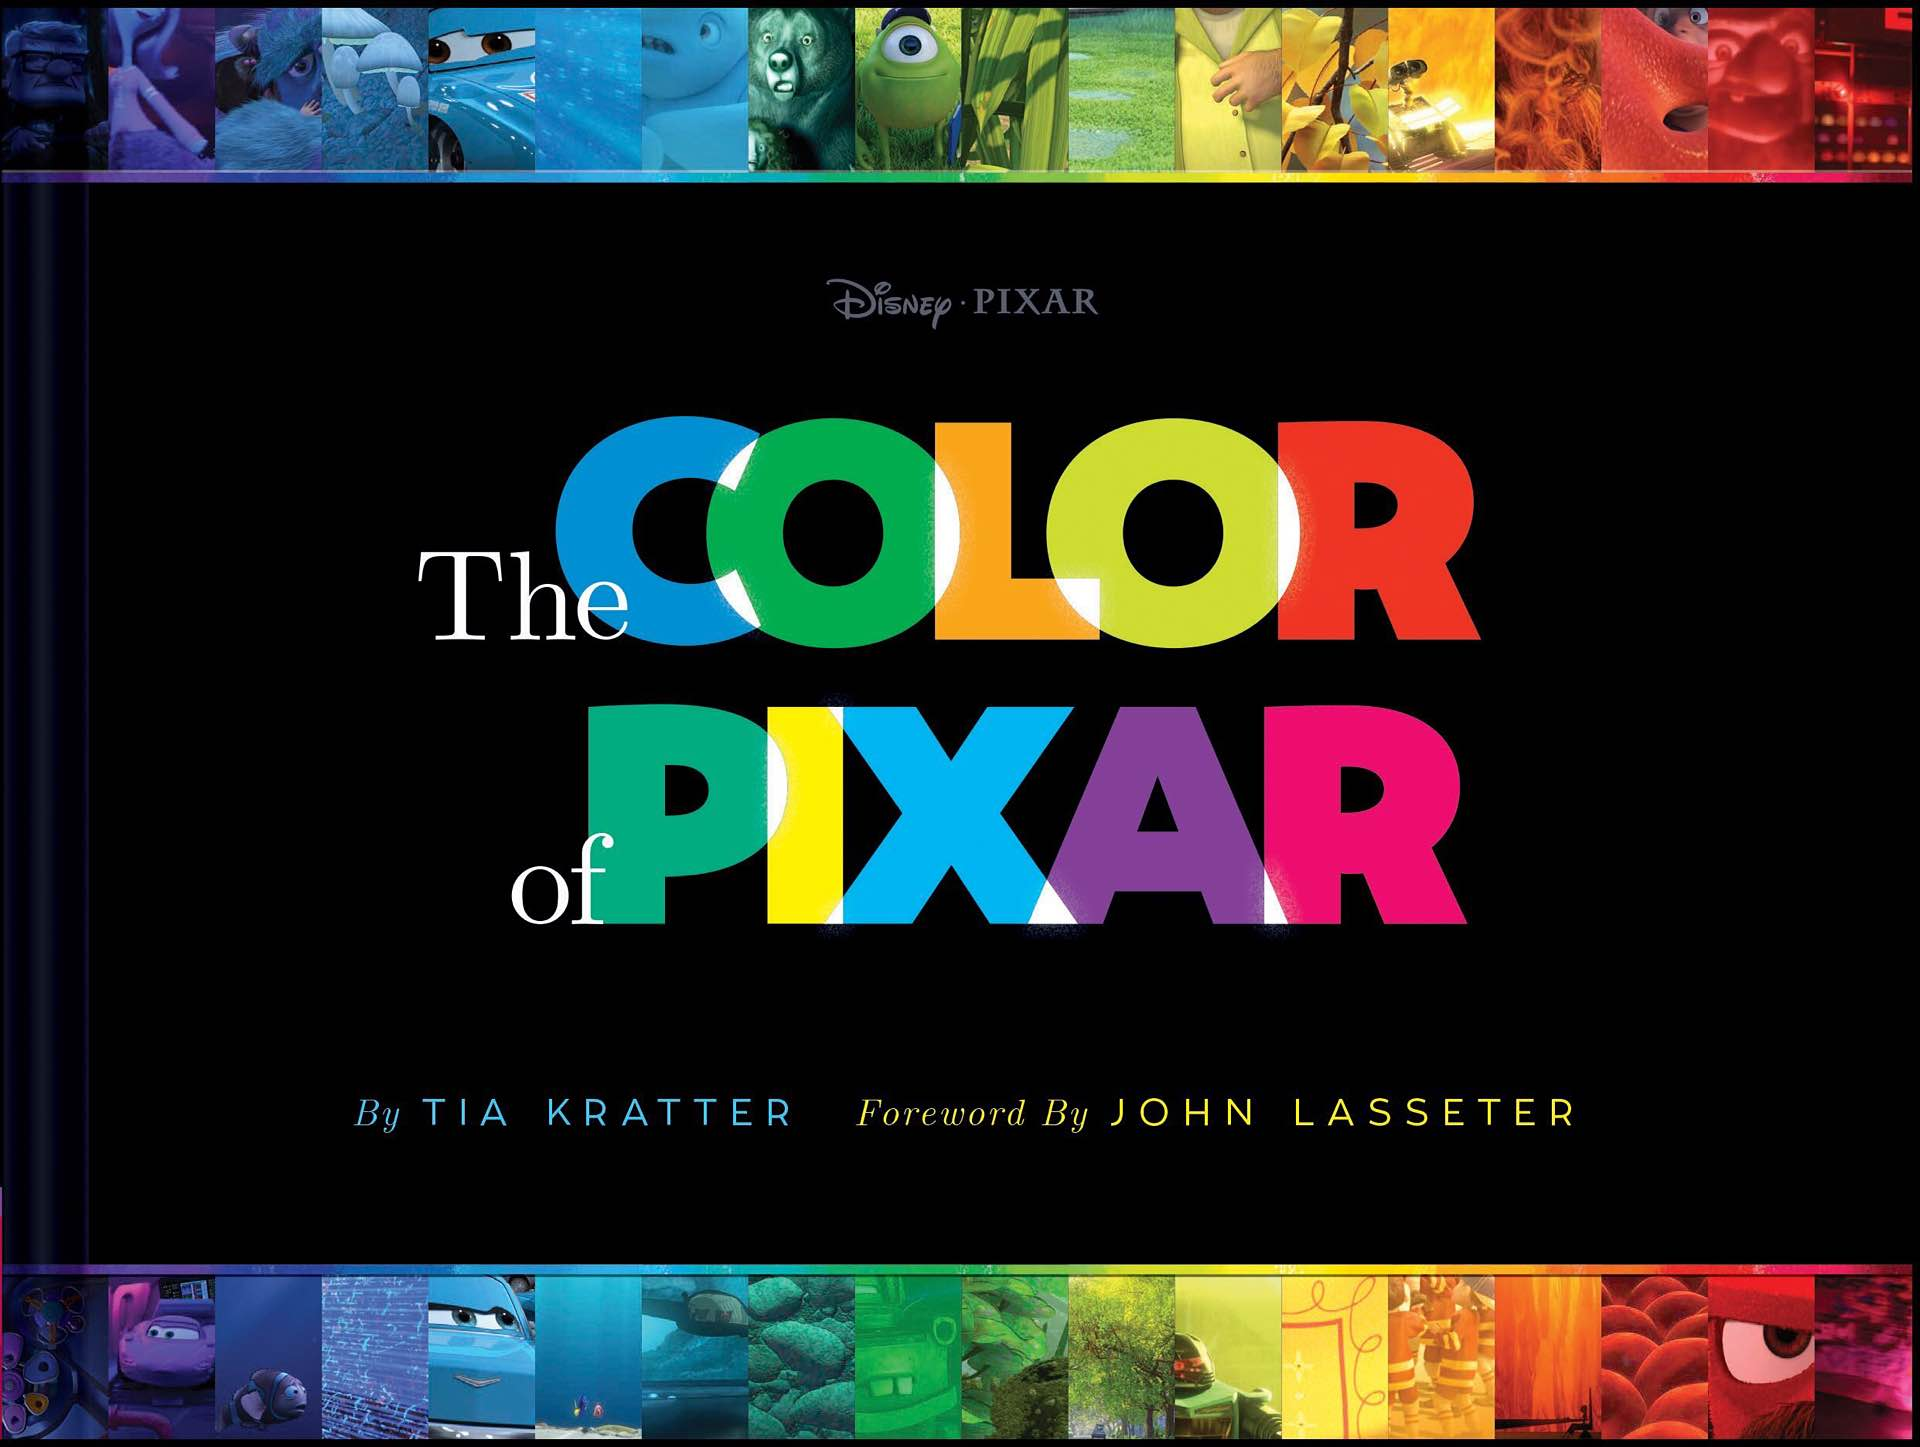 The Color of Pixar by Tia Kratter.  ($21 hardcover)